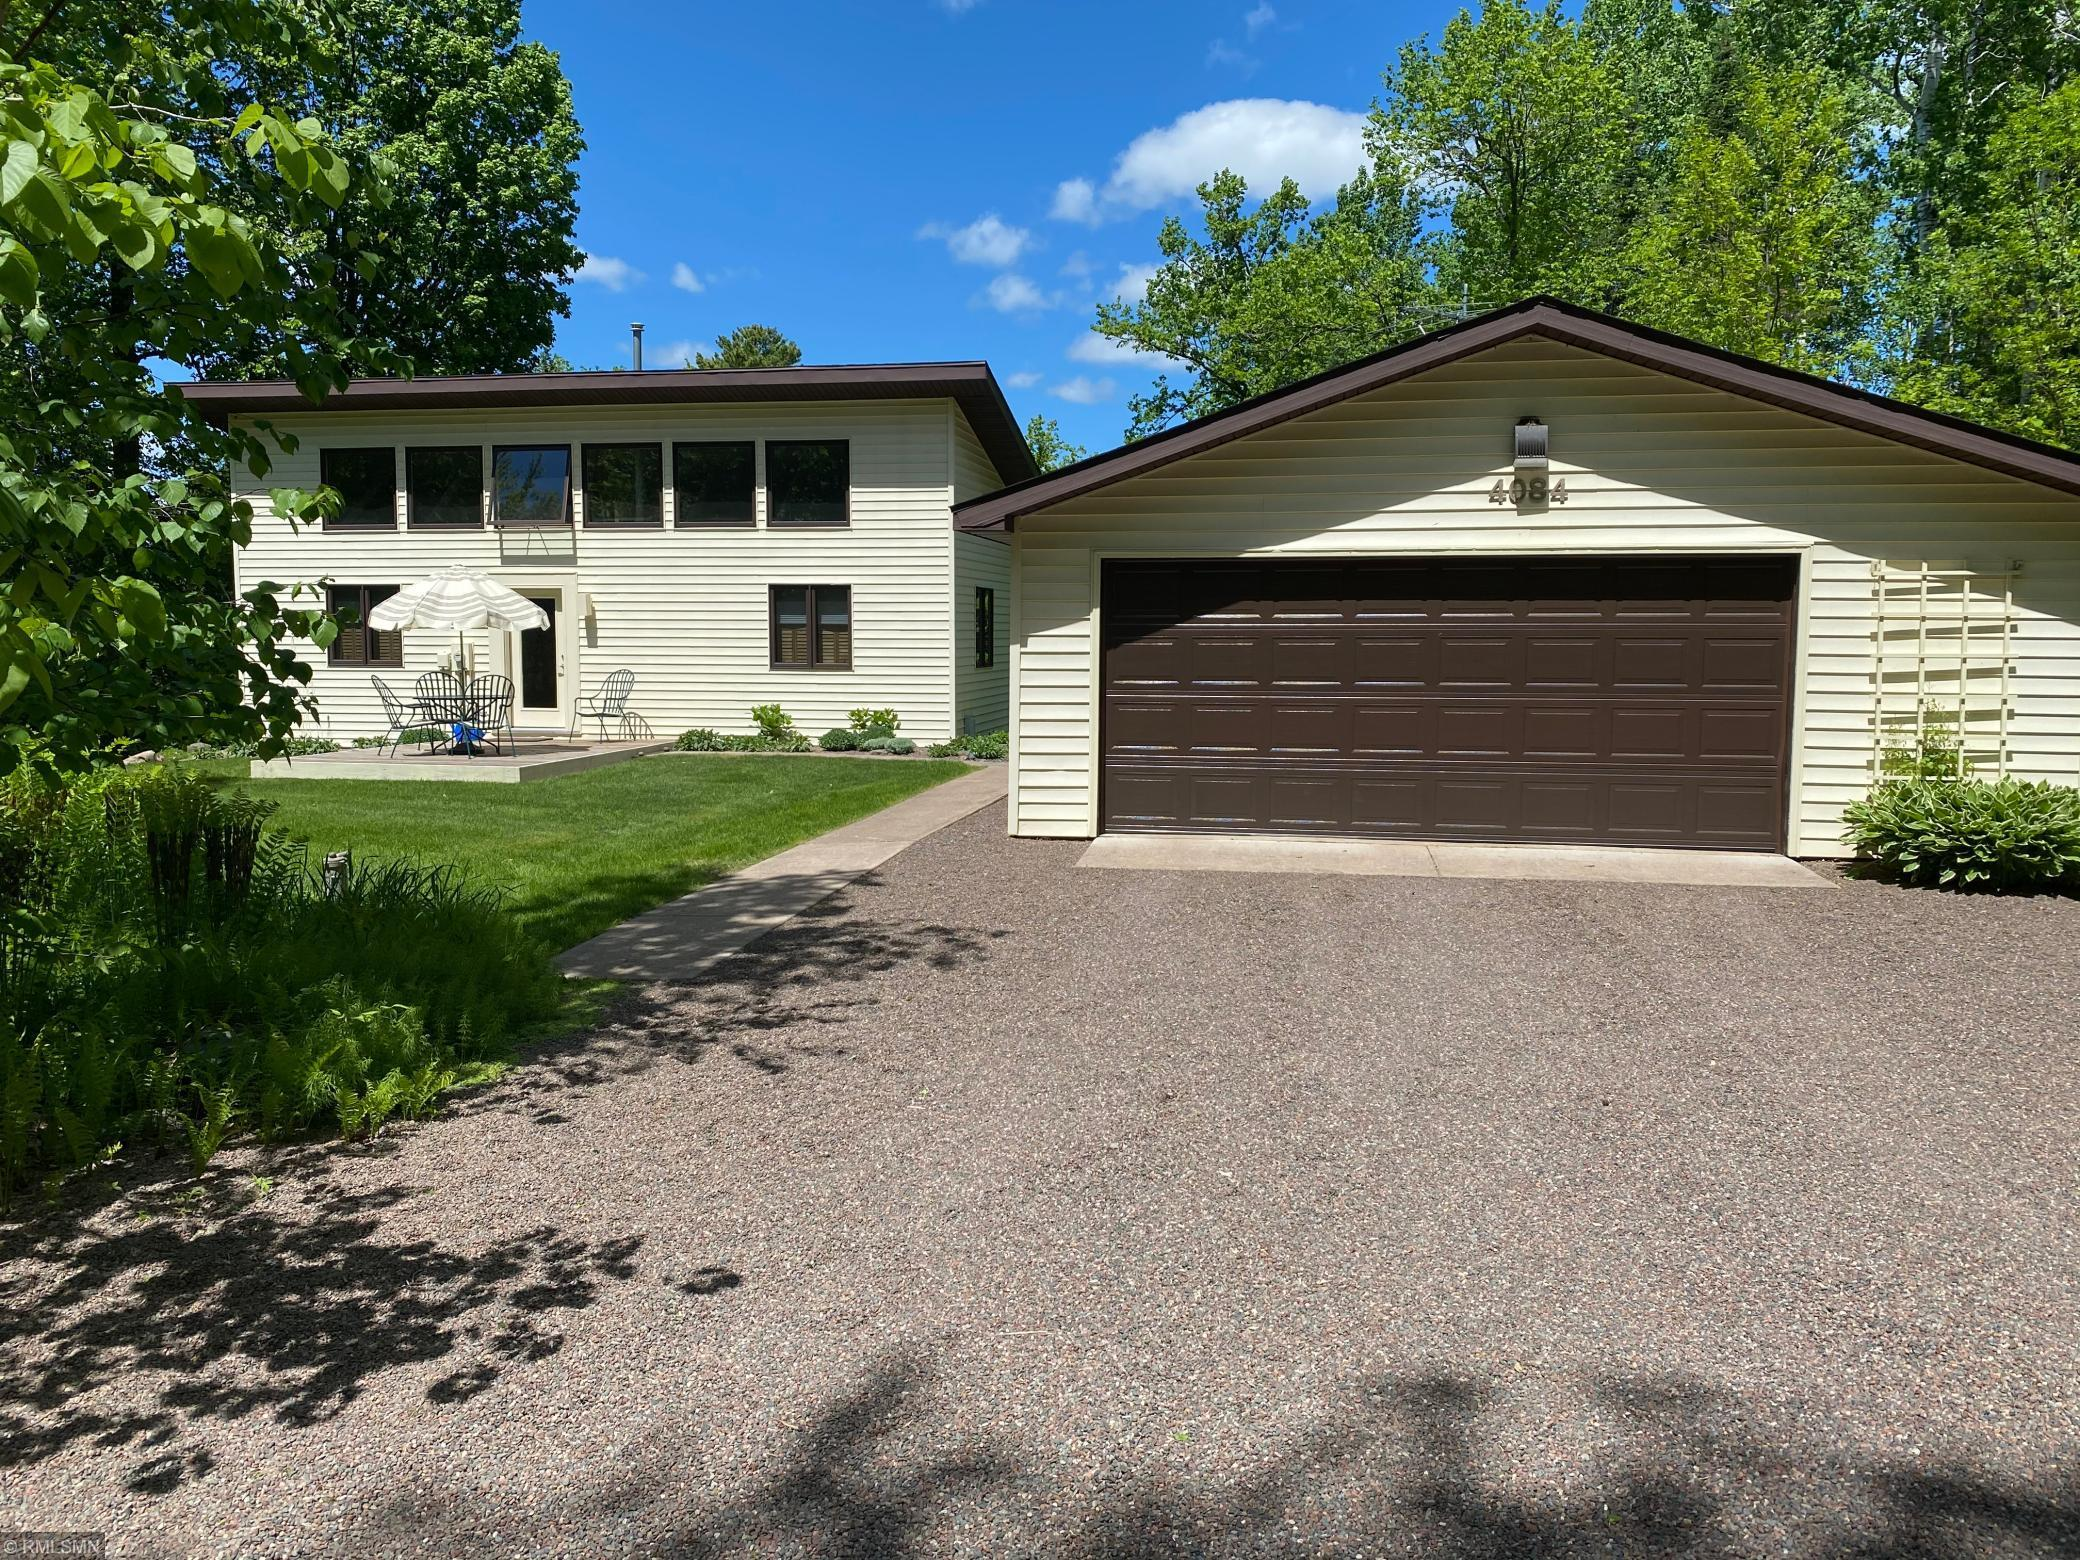 4084 County Rd 13 Property Photo - Moose Lake, MN real estate listing